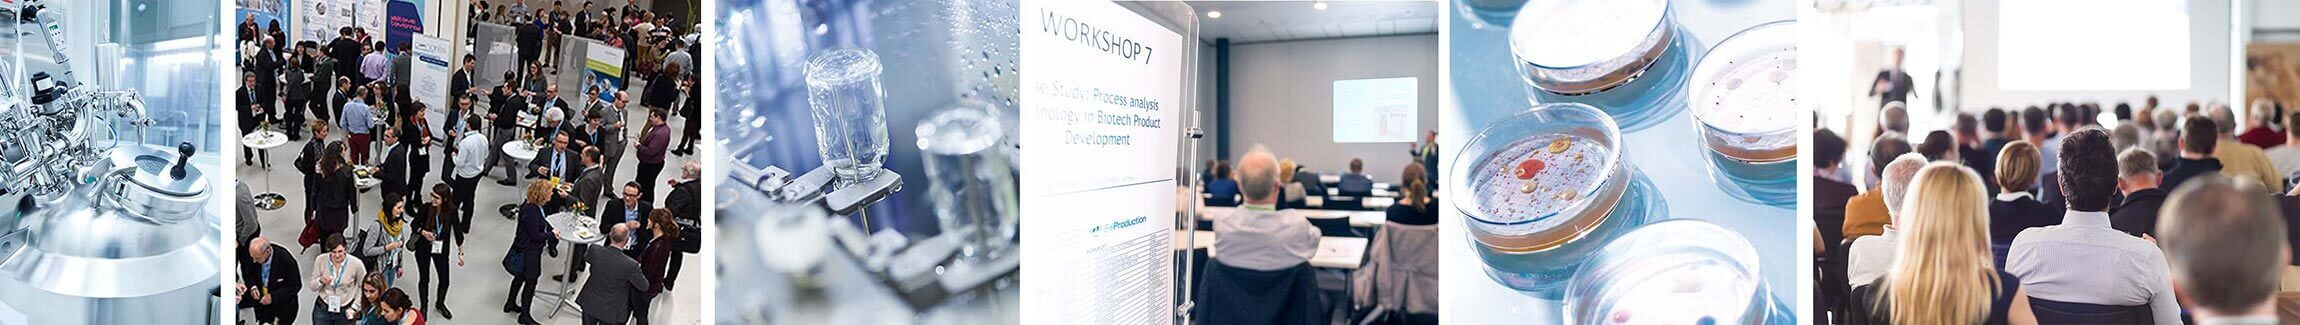 A3P Events, Training, Workshops, Workshop, Pharmaceutical Industry Conferences